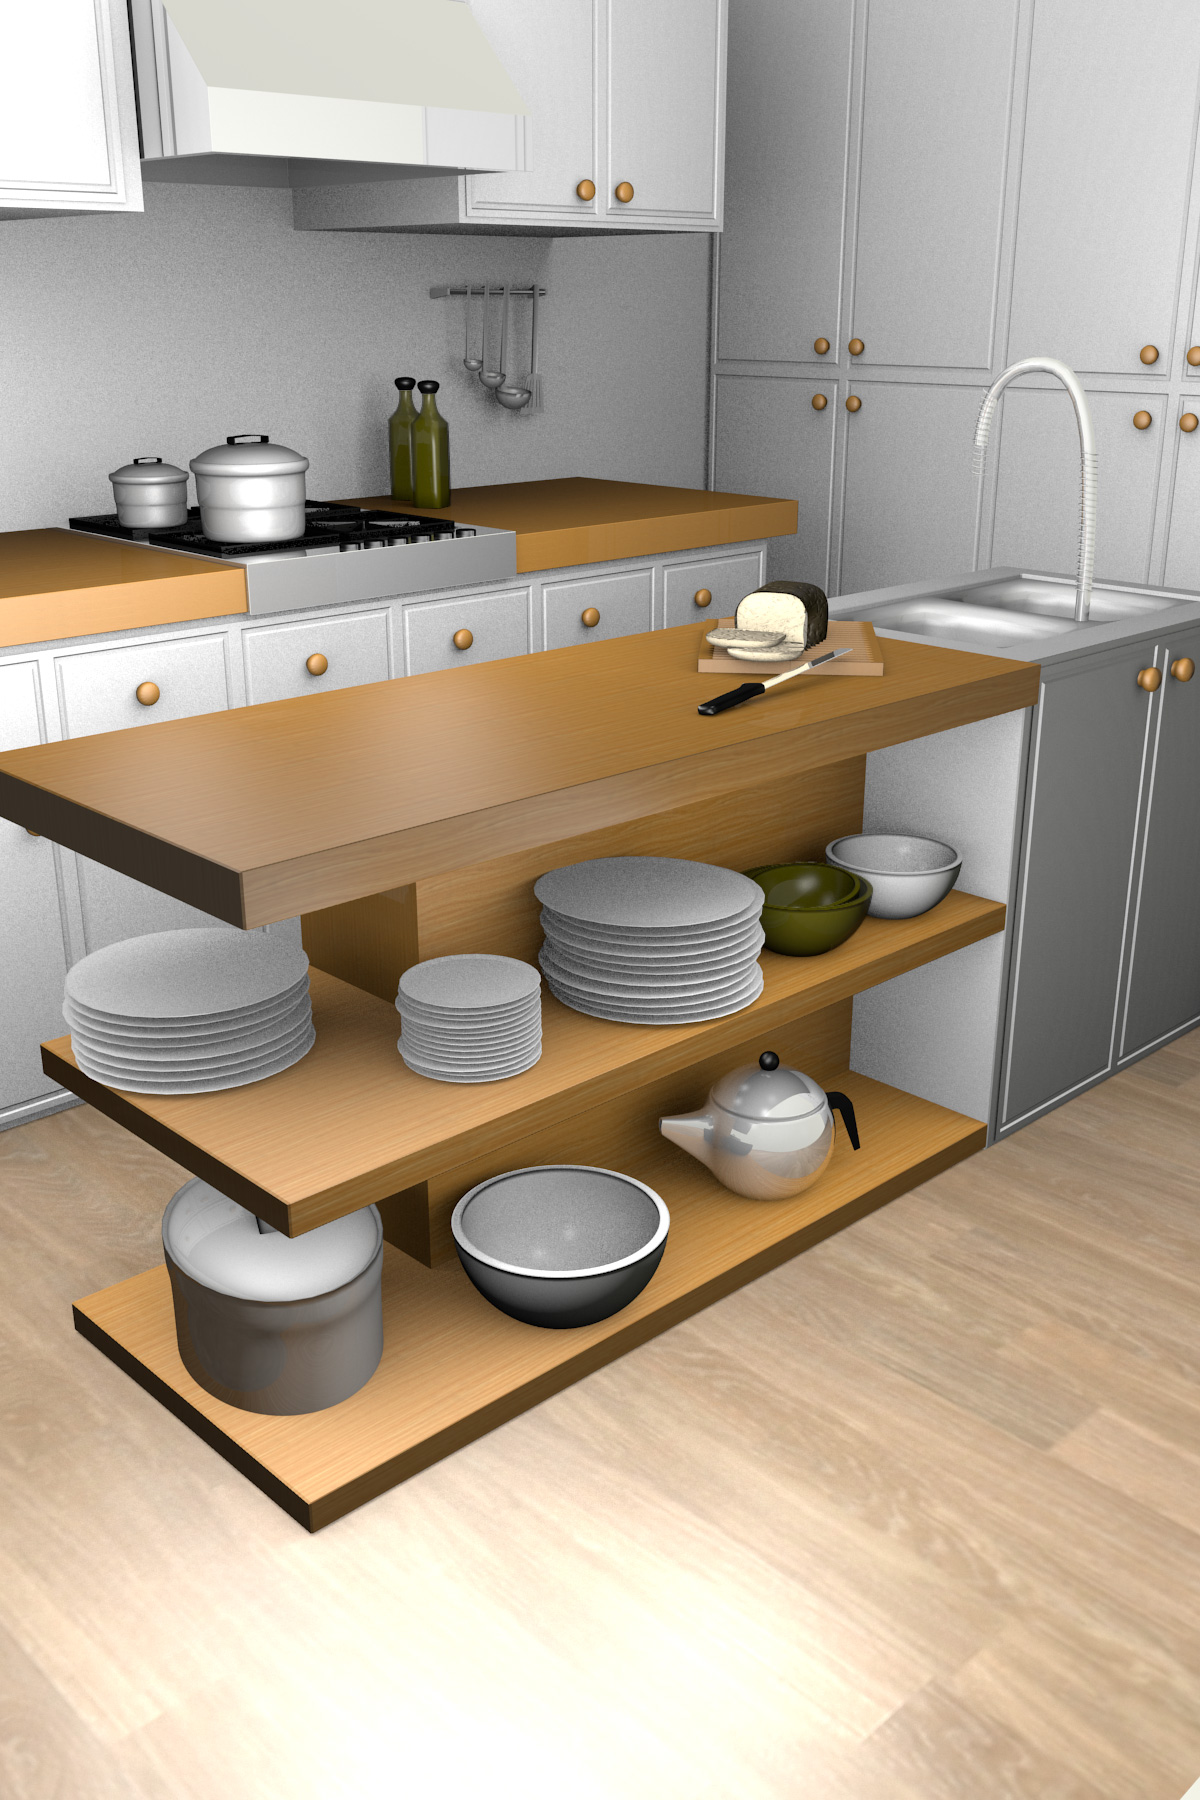 Blackspike design ltd blender 3d kitchen model for Model kitchen design